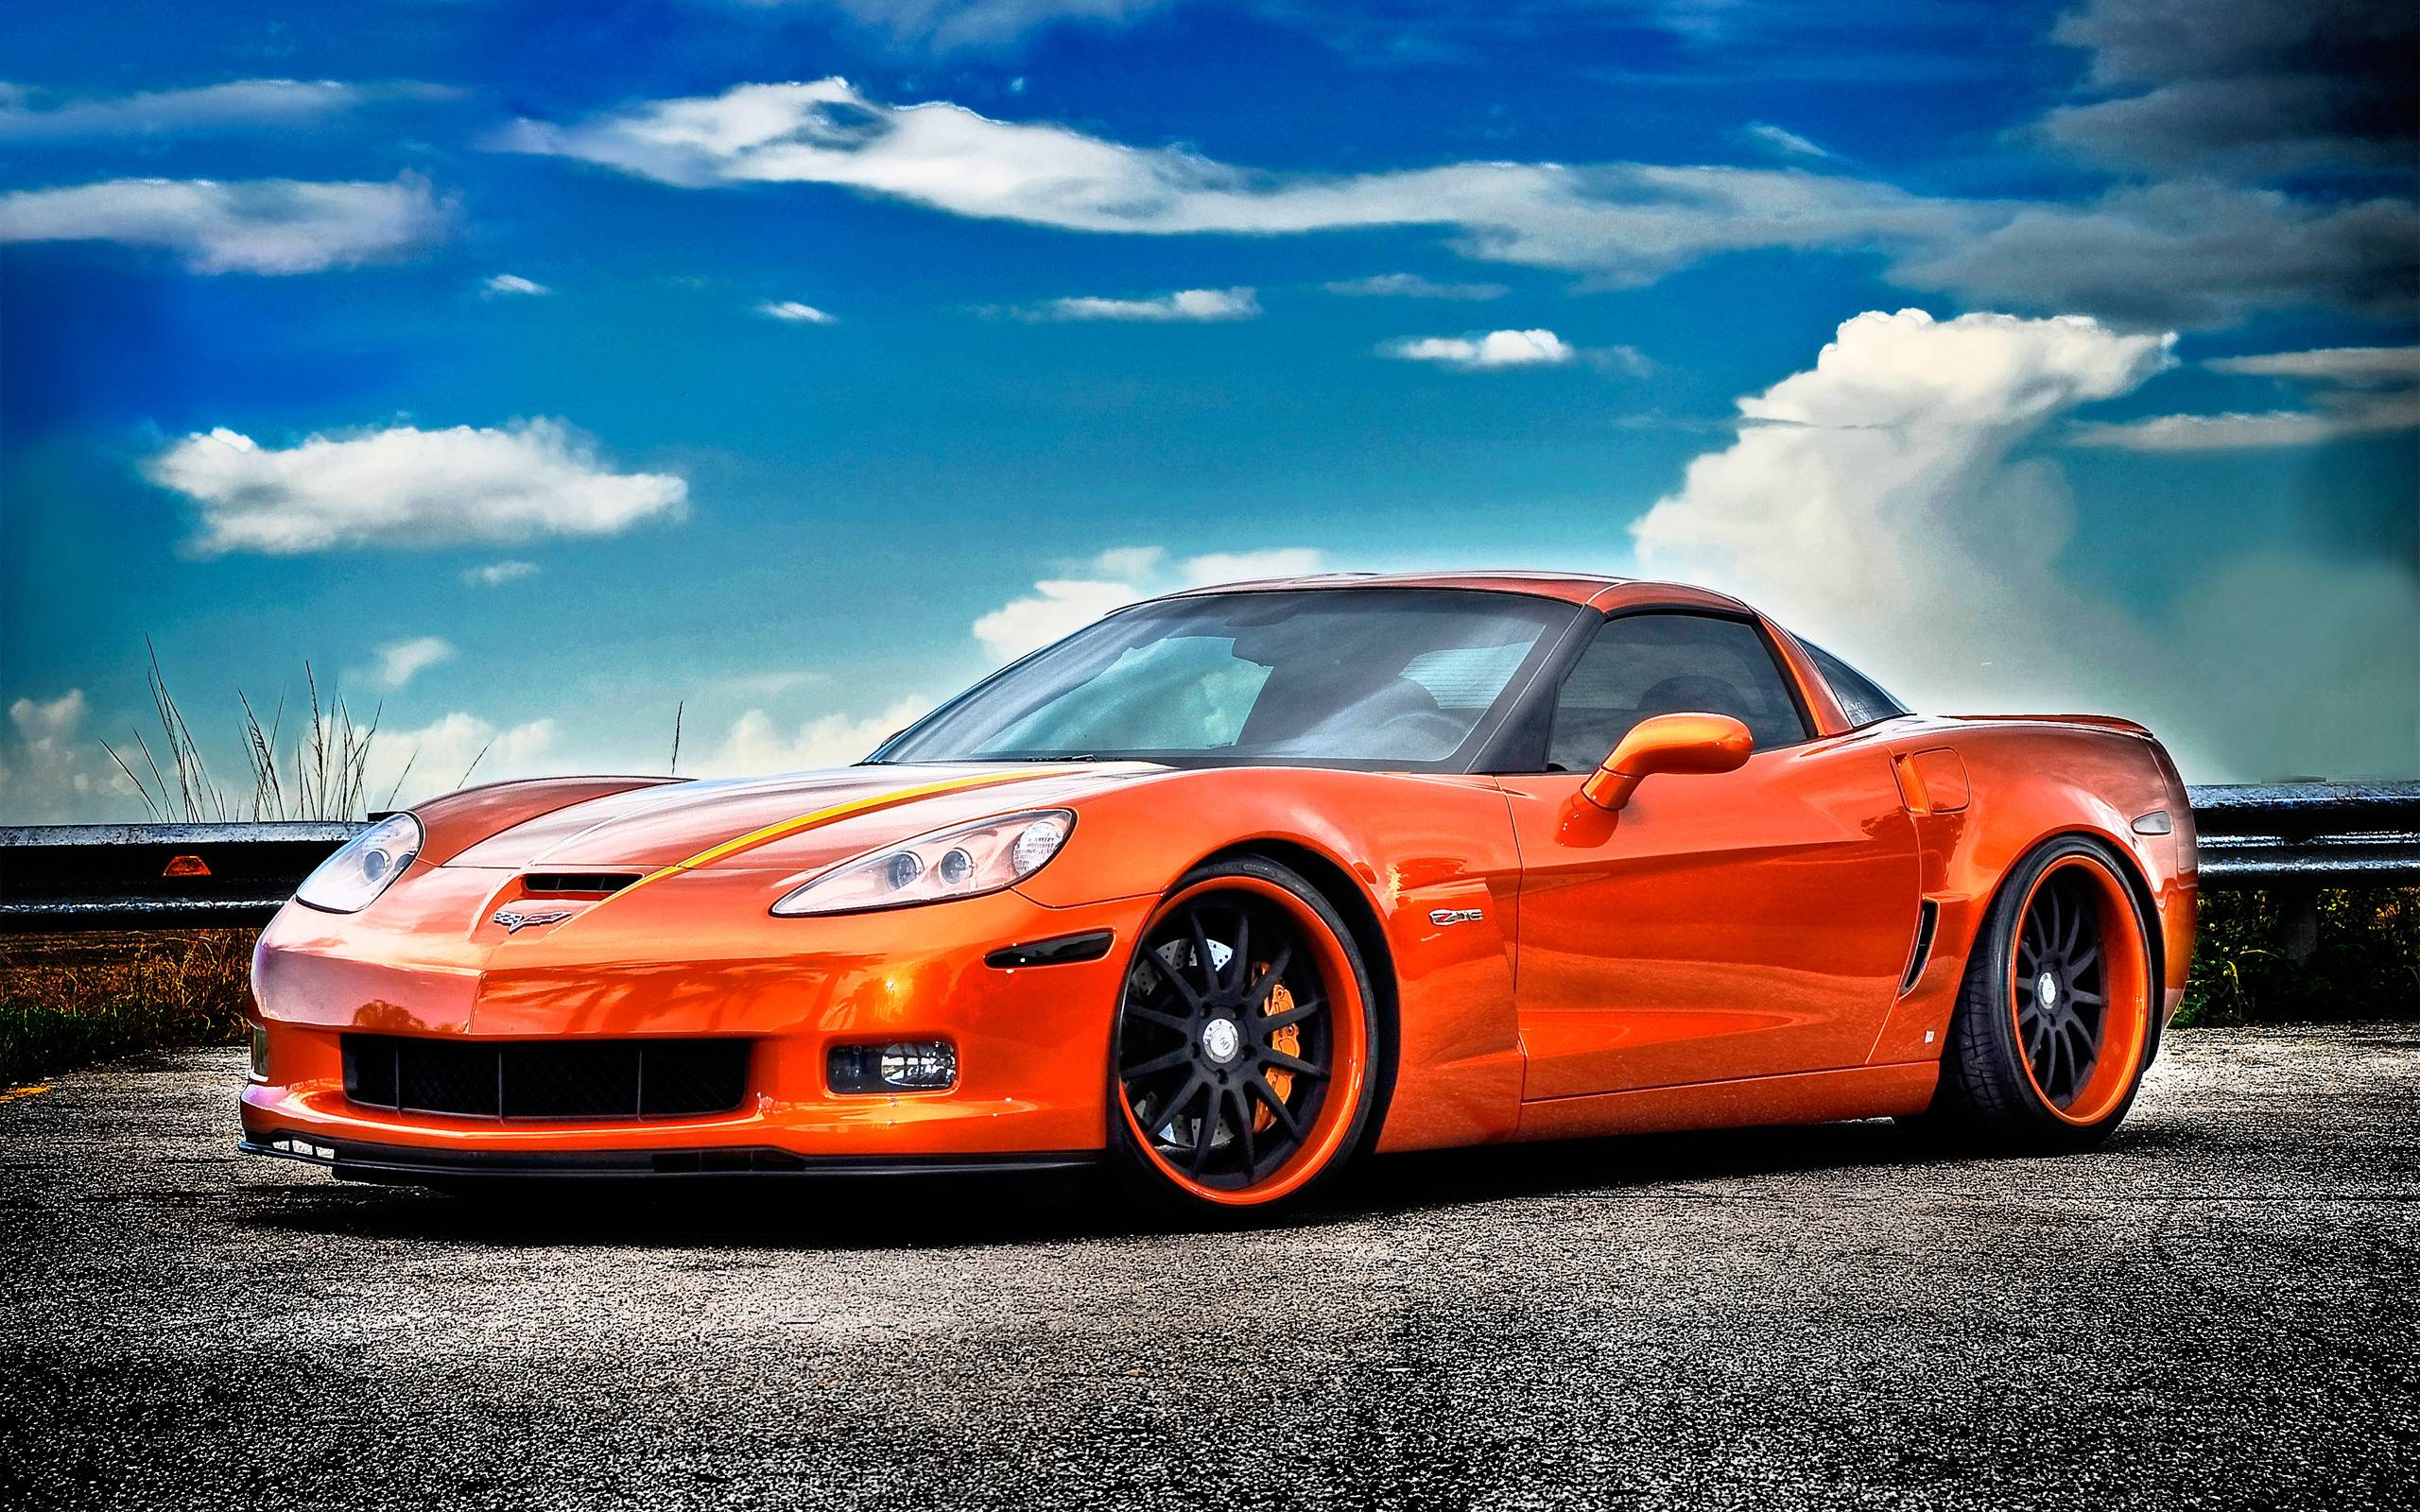 corvette wallpaper hd - photo #6